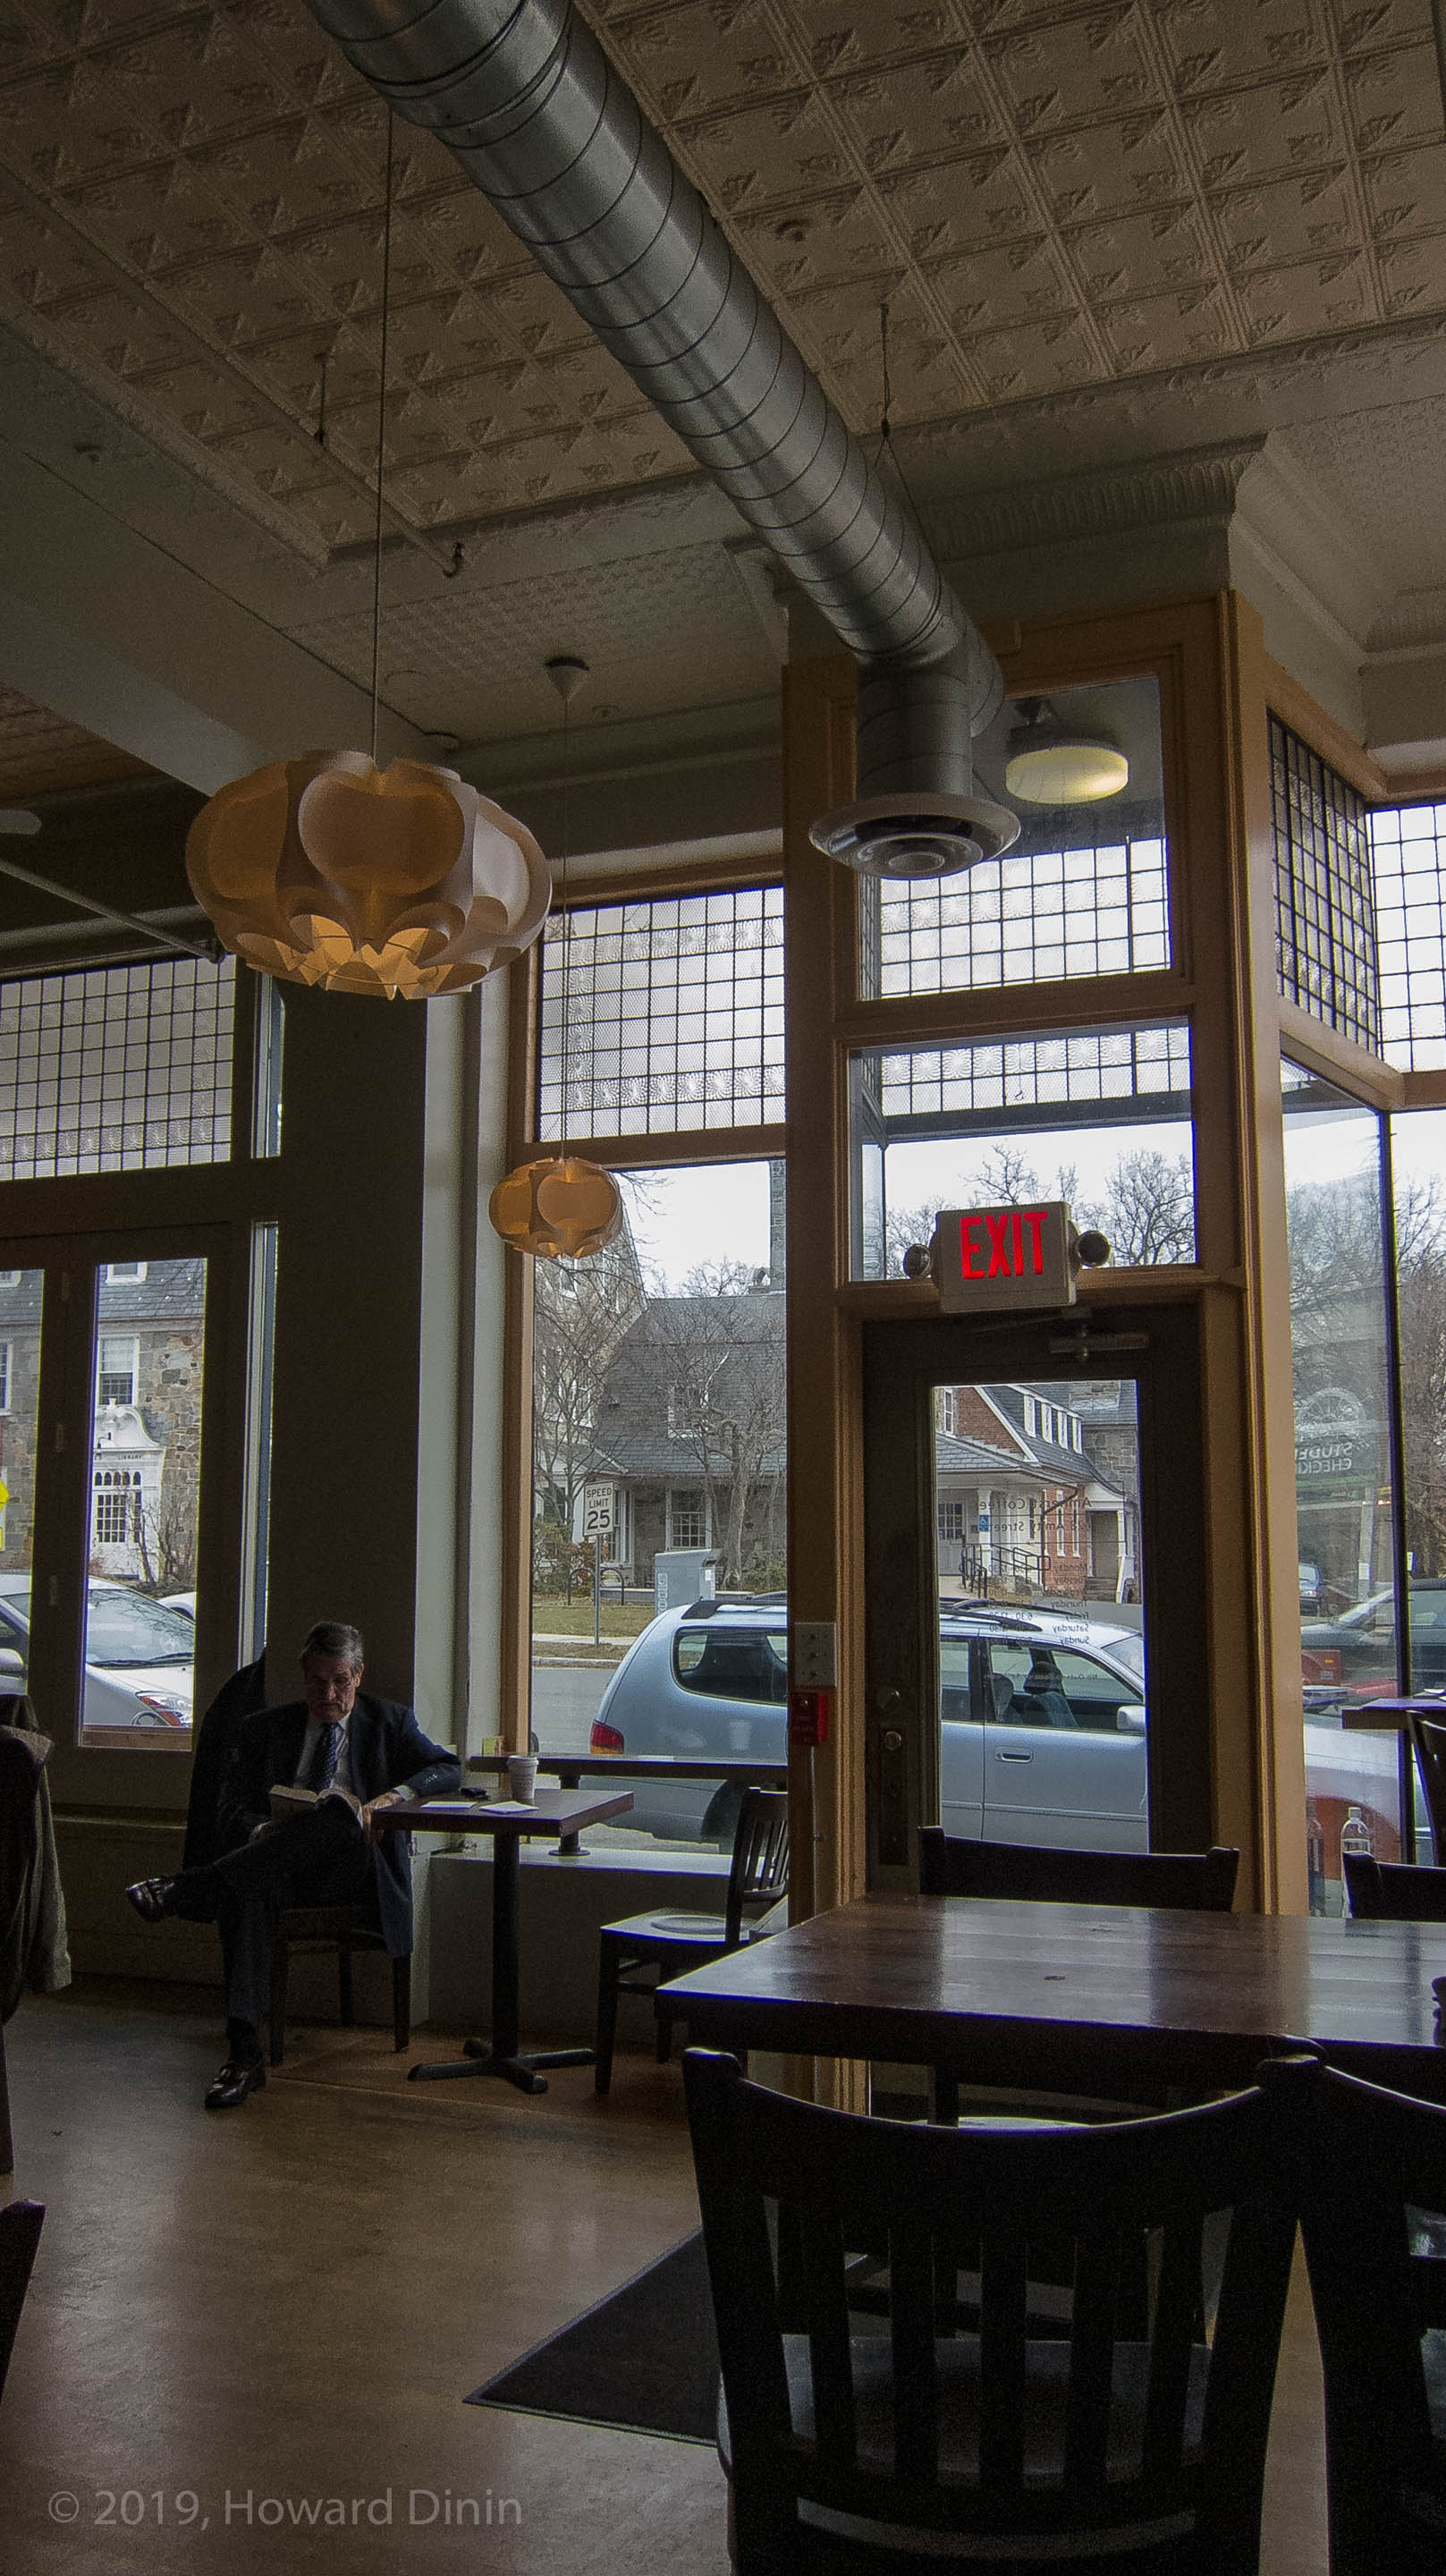 Amherst Coffee reveals its pensive potentialities. The mark of a great coffee house is the extent it can accommodate your frame of mind, and your disposition of the moment. With nothing, the light, the decor, the serving ware, either insufficient or obtrusive. image: © Howard Dinin.